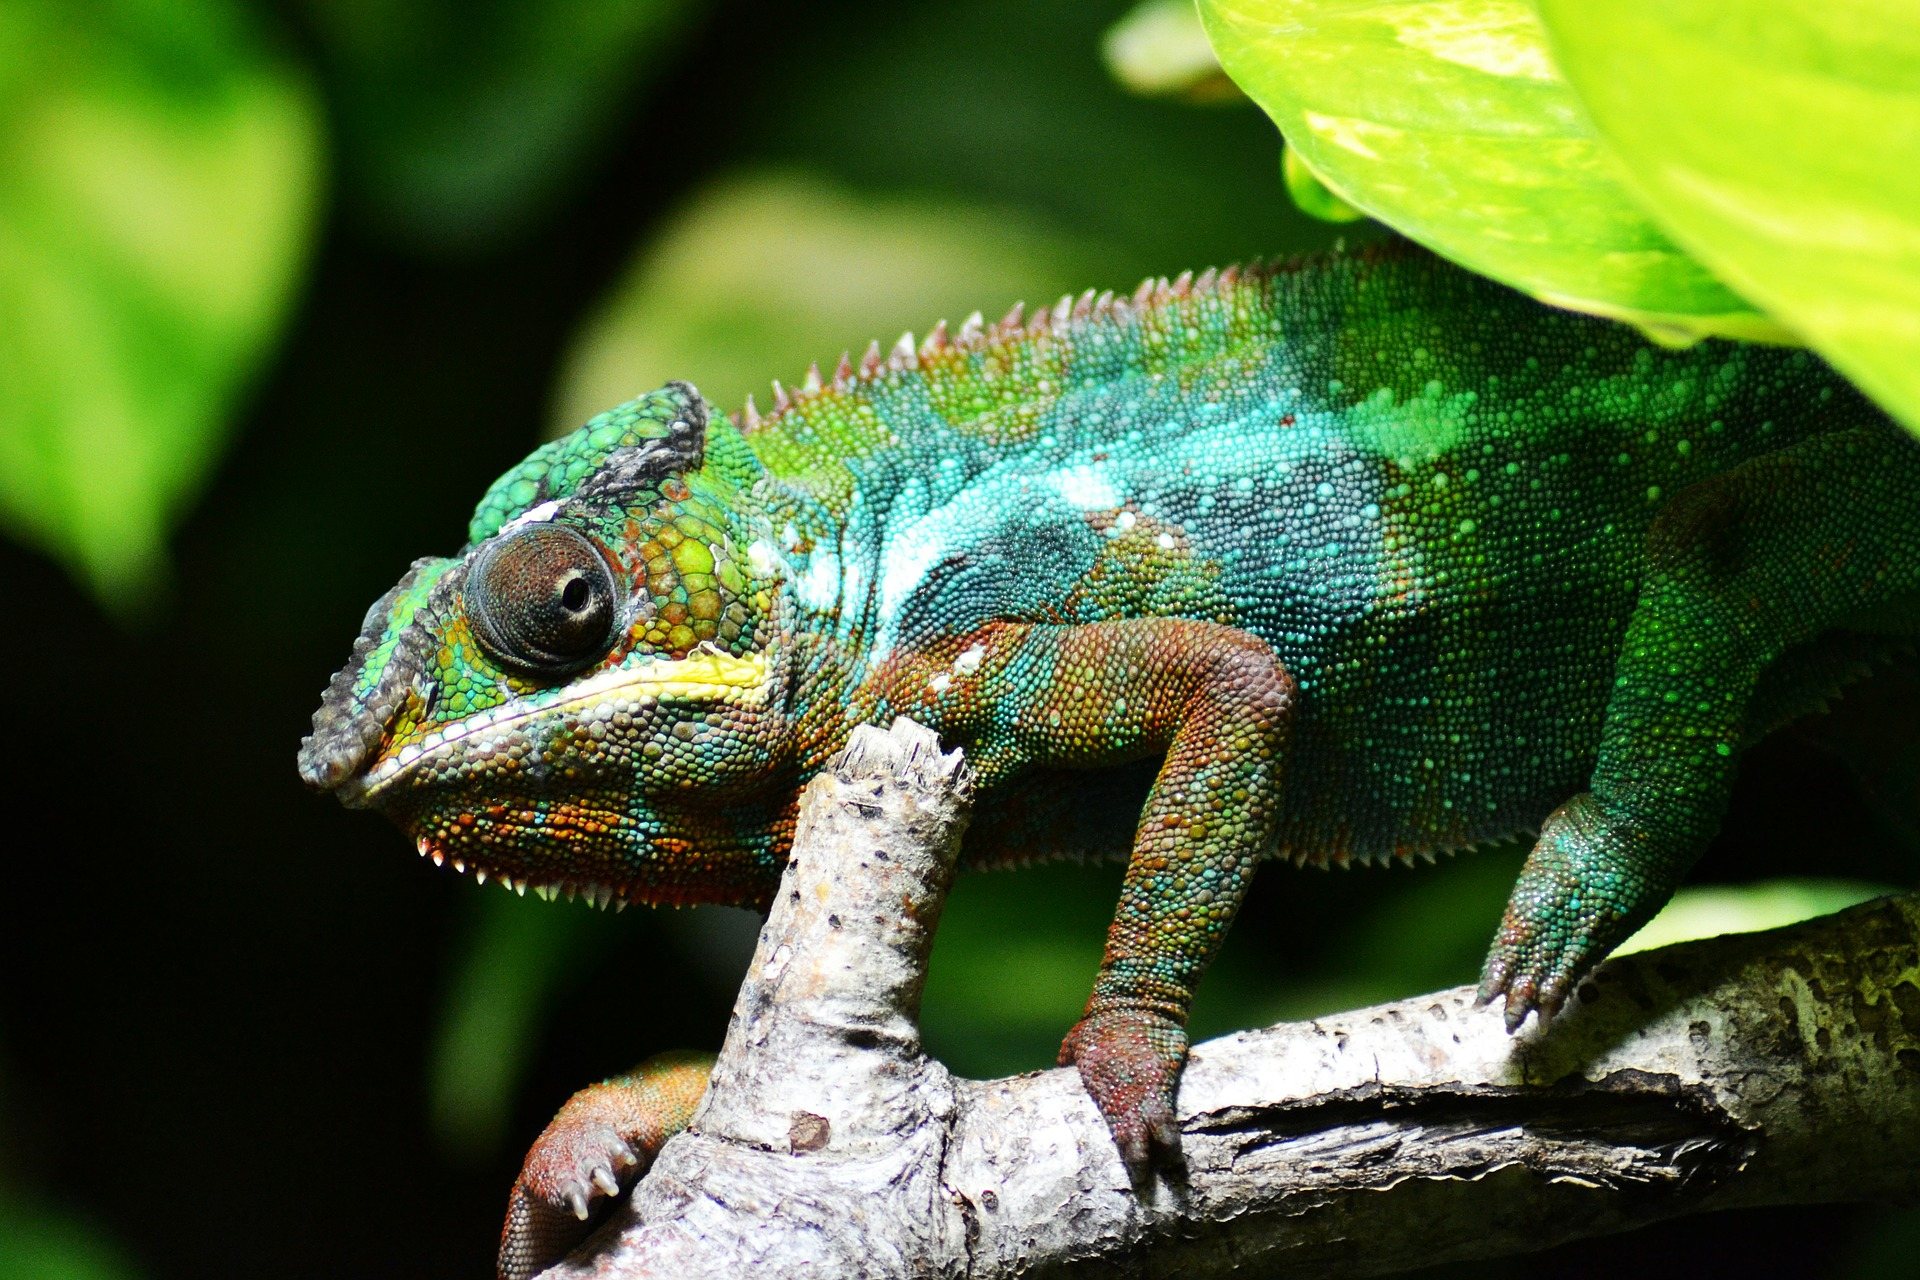 Side view photo of chameleon on branch